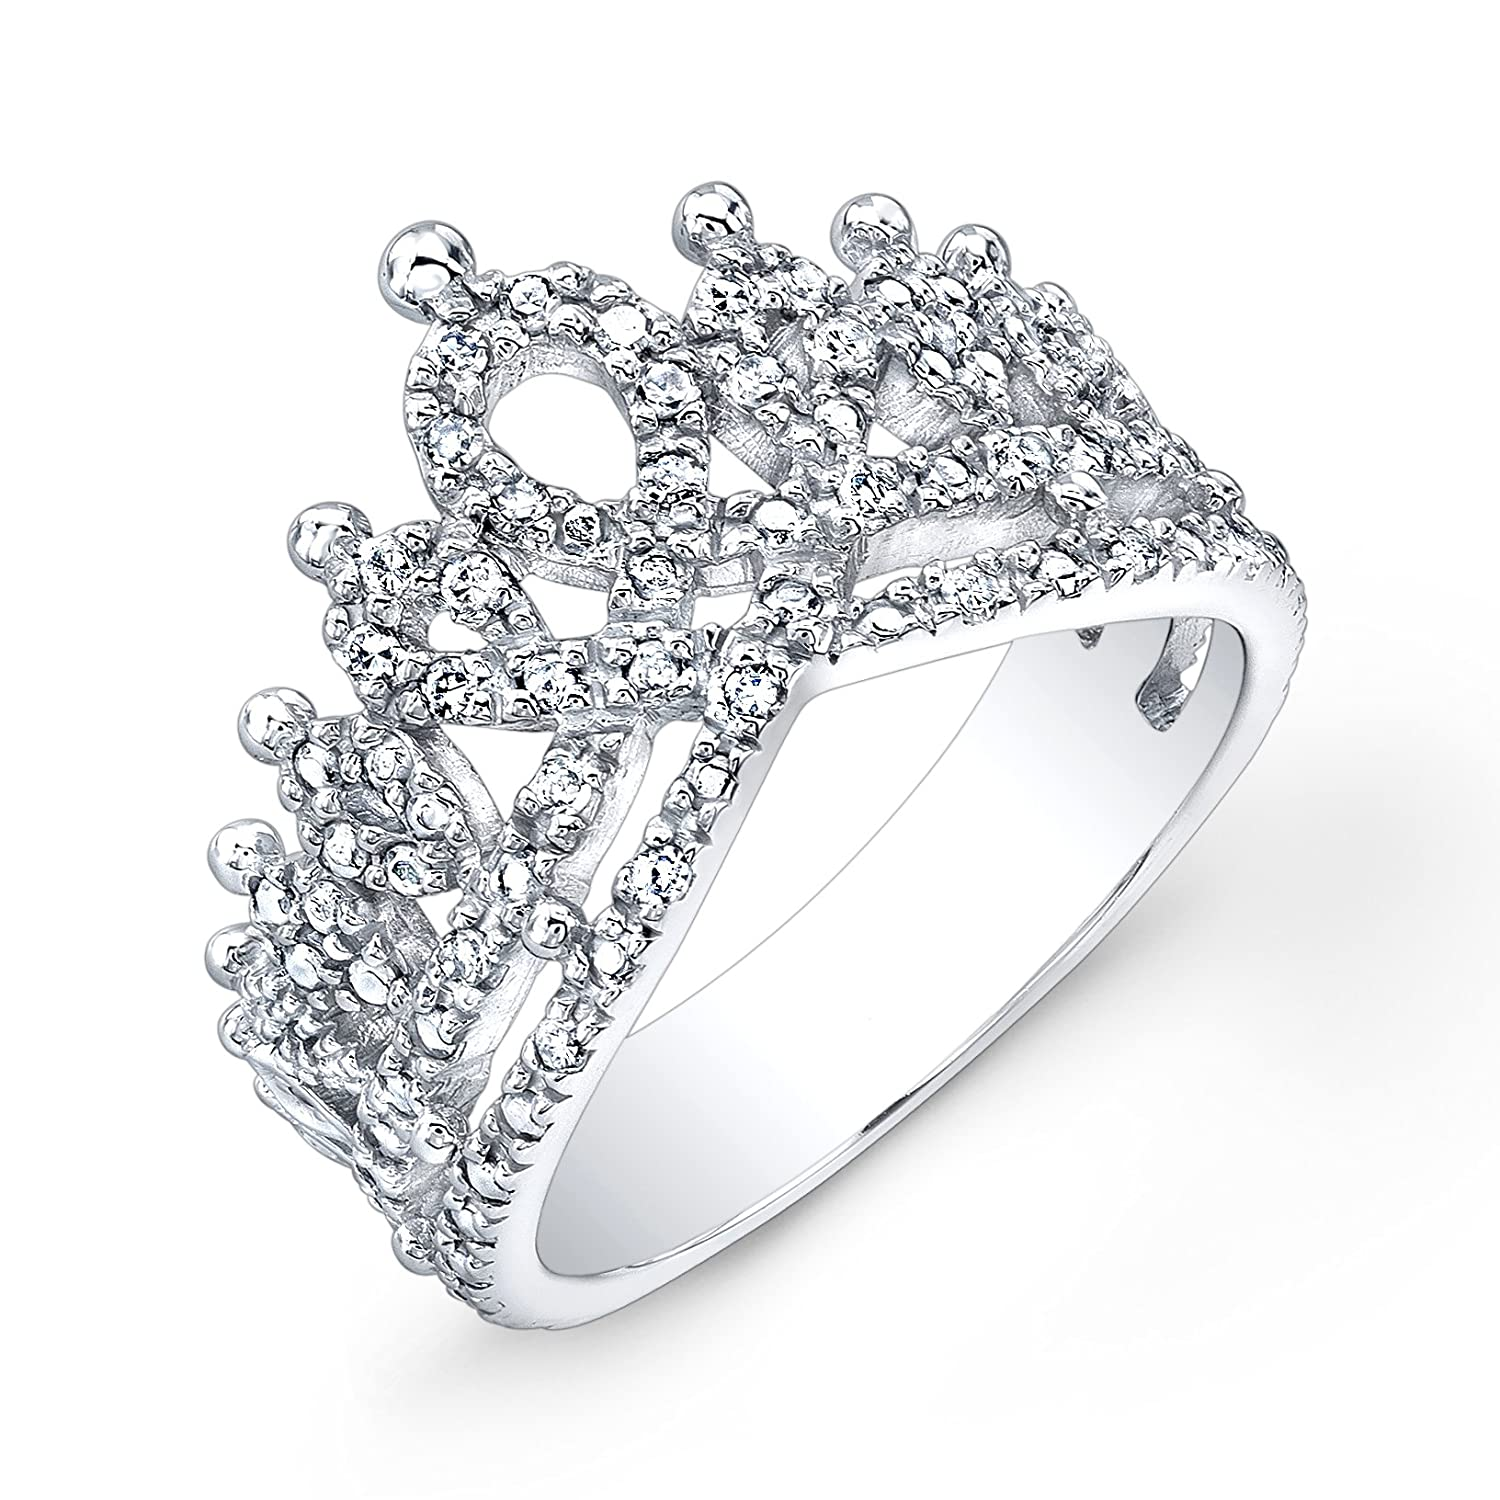 designer rings crownring diamond engagement wedding crown